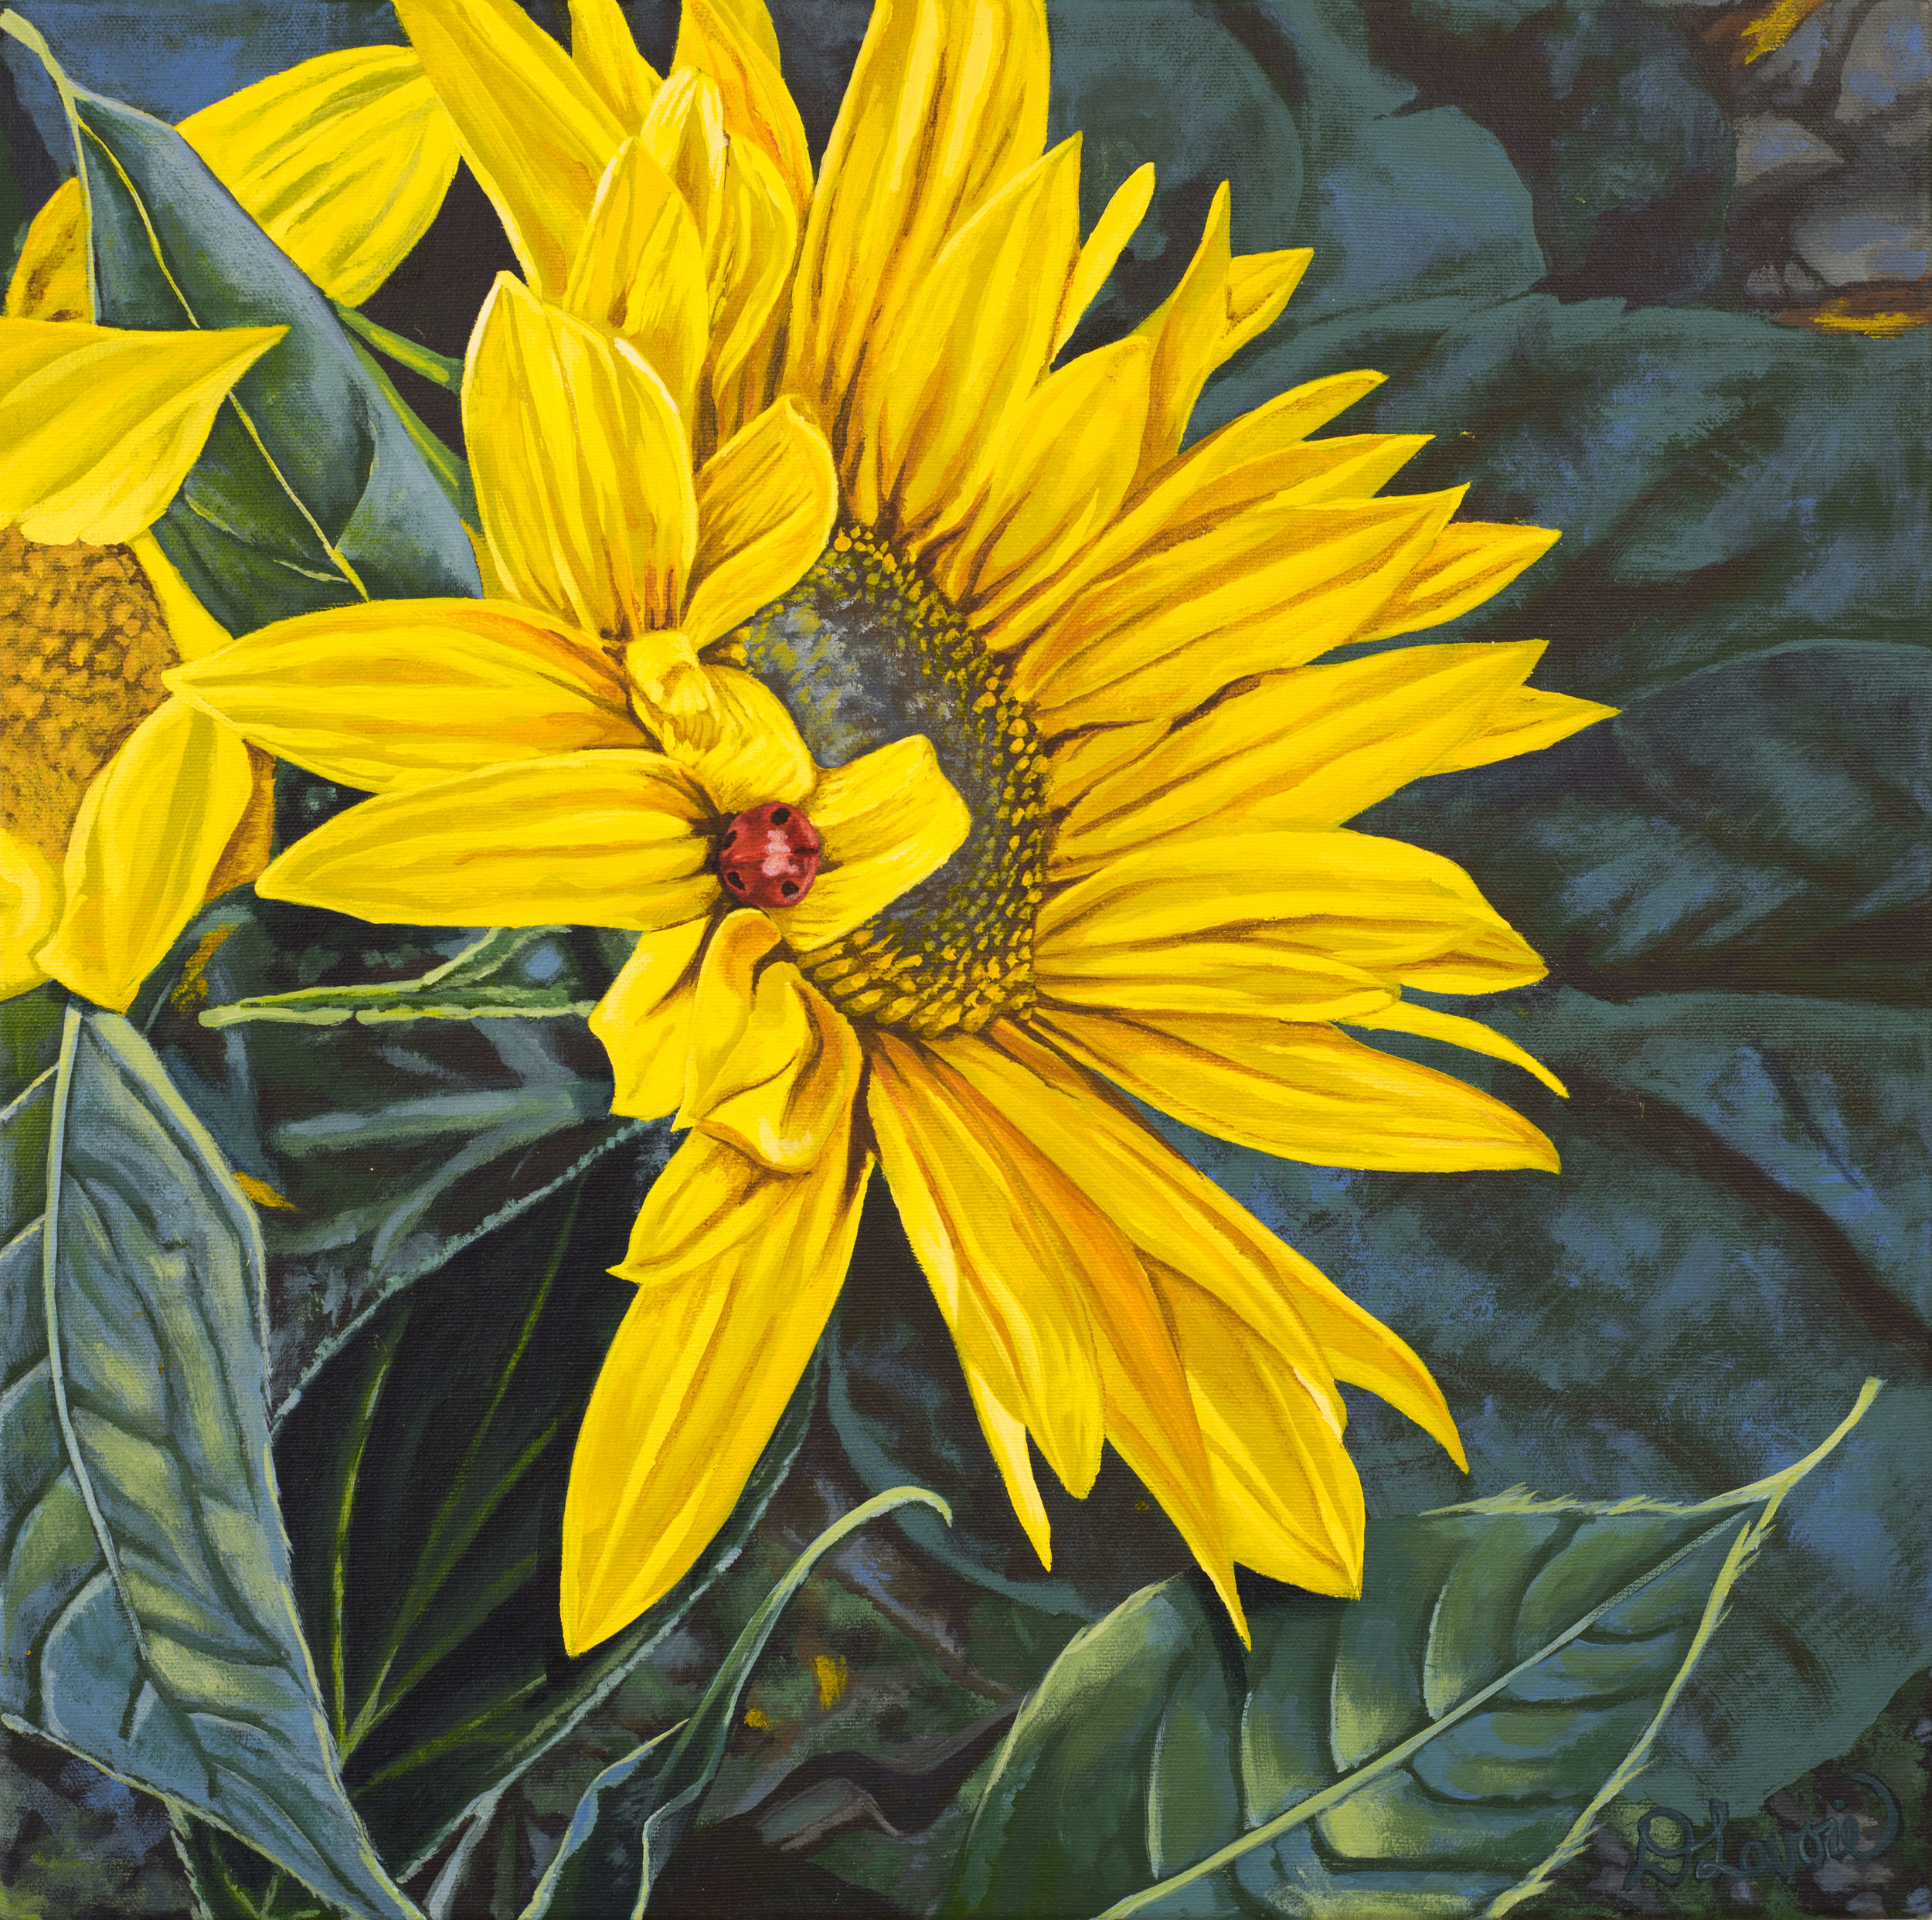 """Bugnap    Acrylic on Canvas - 18"""" x 18""""   Both the original and limited edition prints are available.   Tucked away on this dazzling sunflower, even little creatures need naps."""